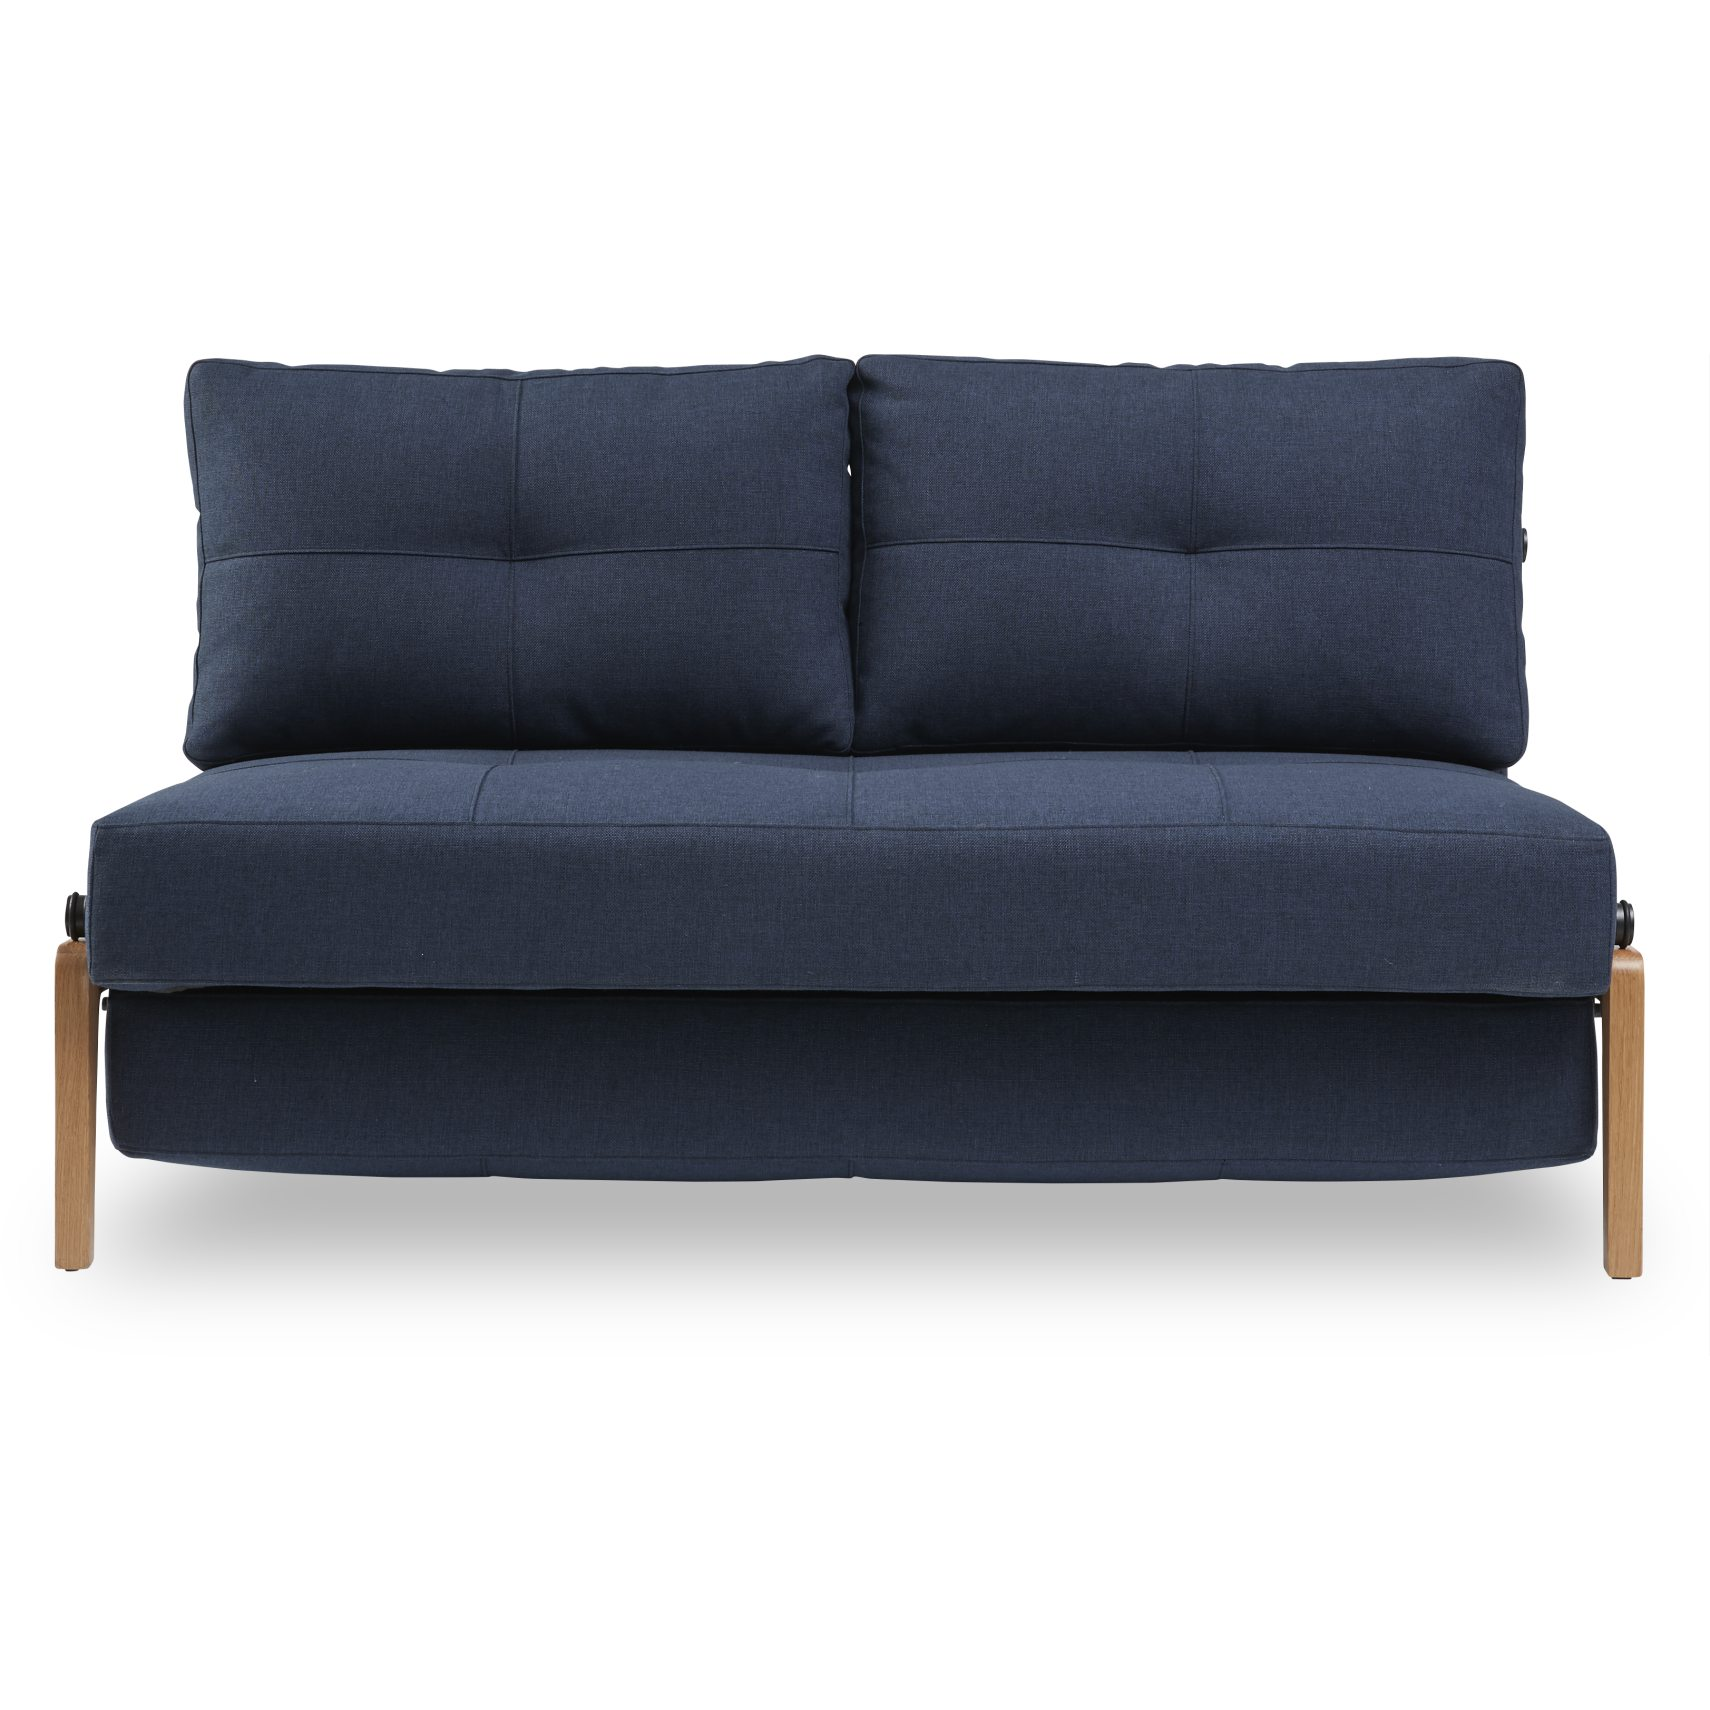 Cubed Wood Sovesofa - Mixed Dance 528 Blue og ben i massiv lakeret eg